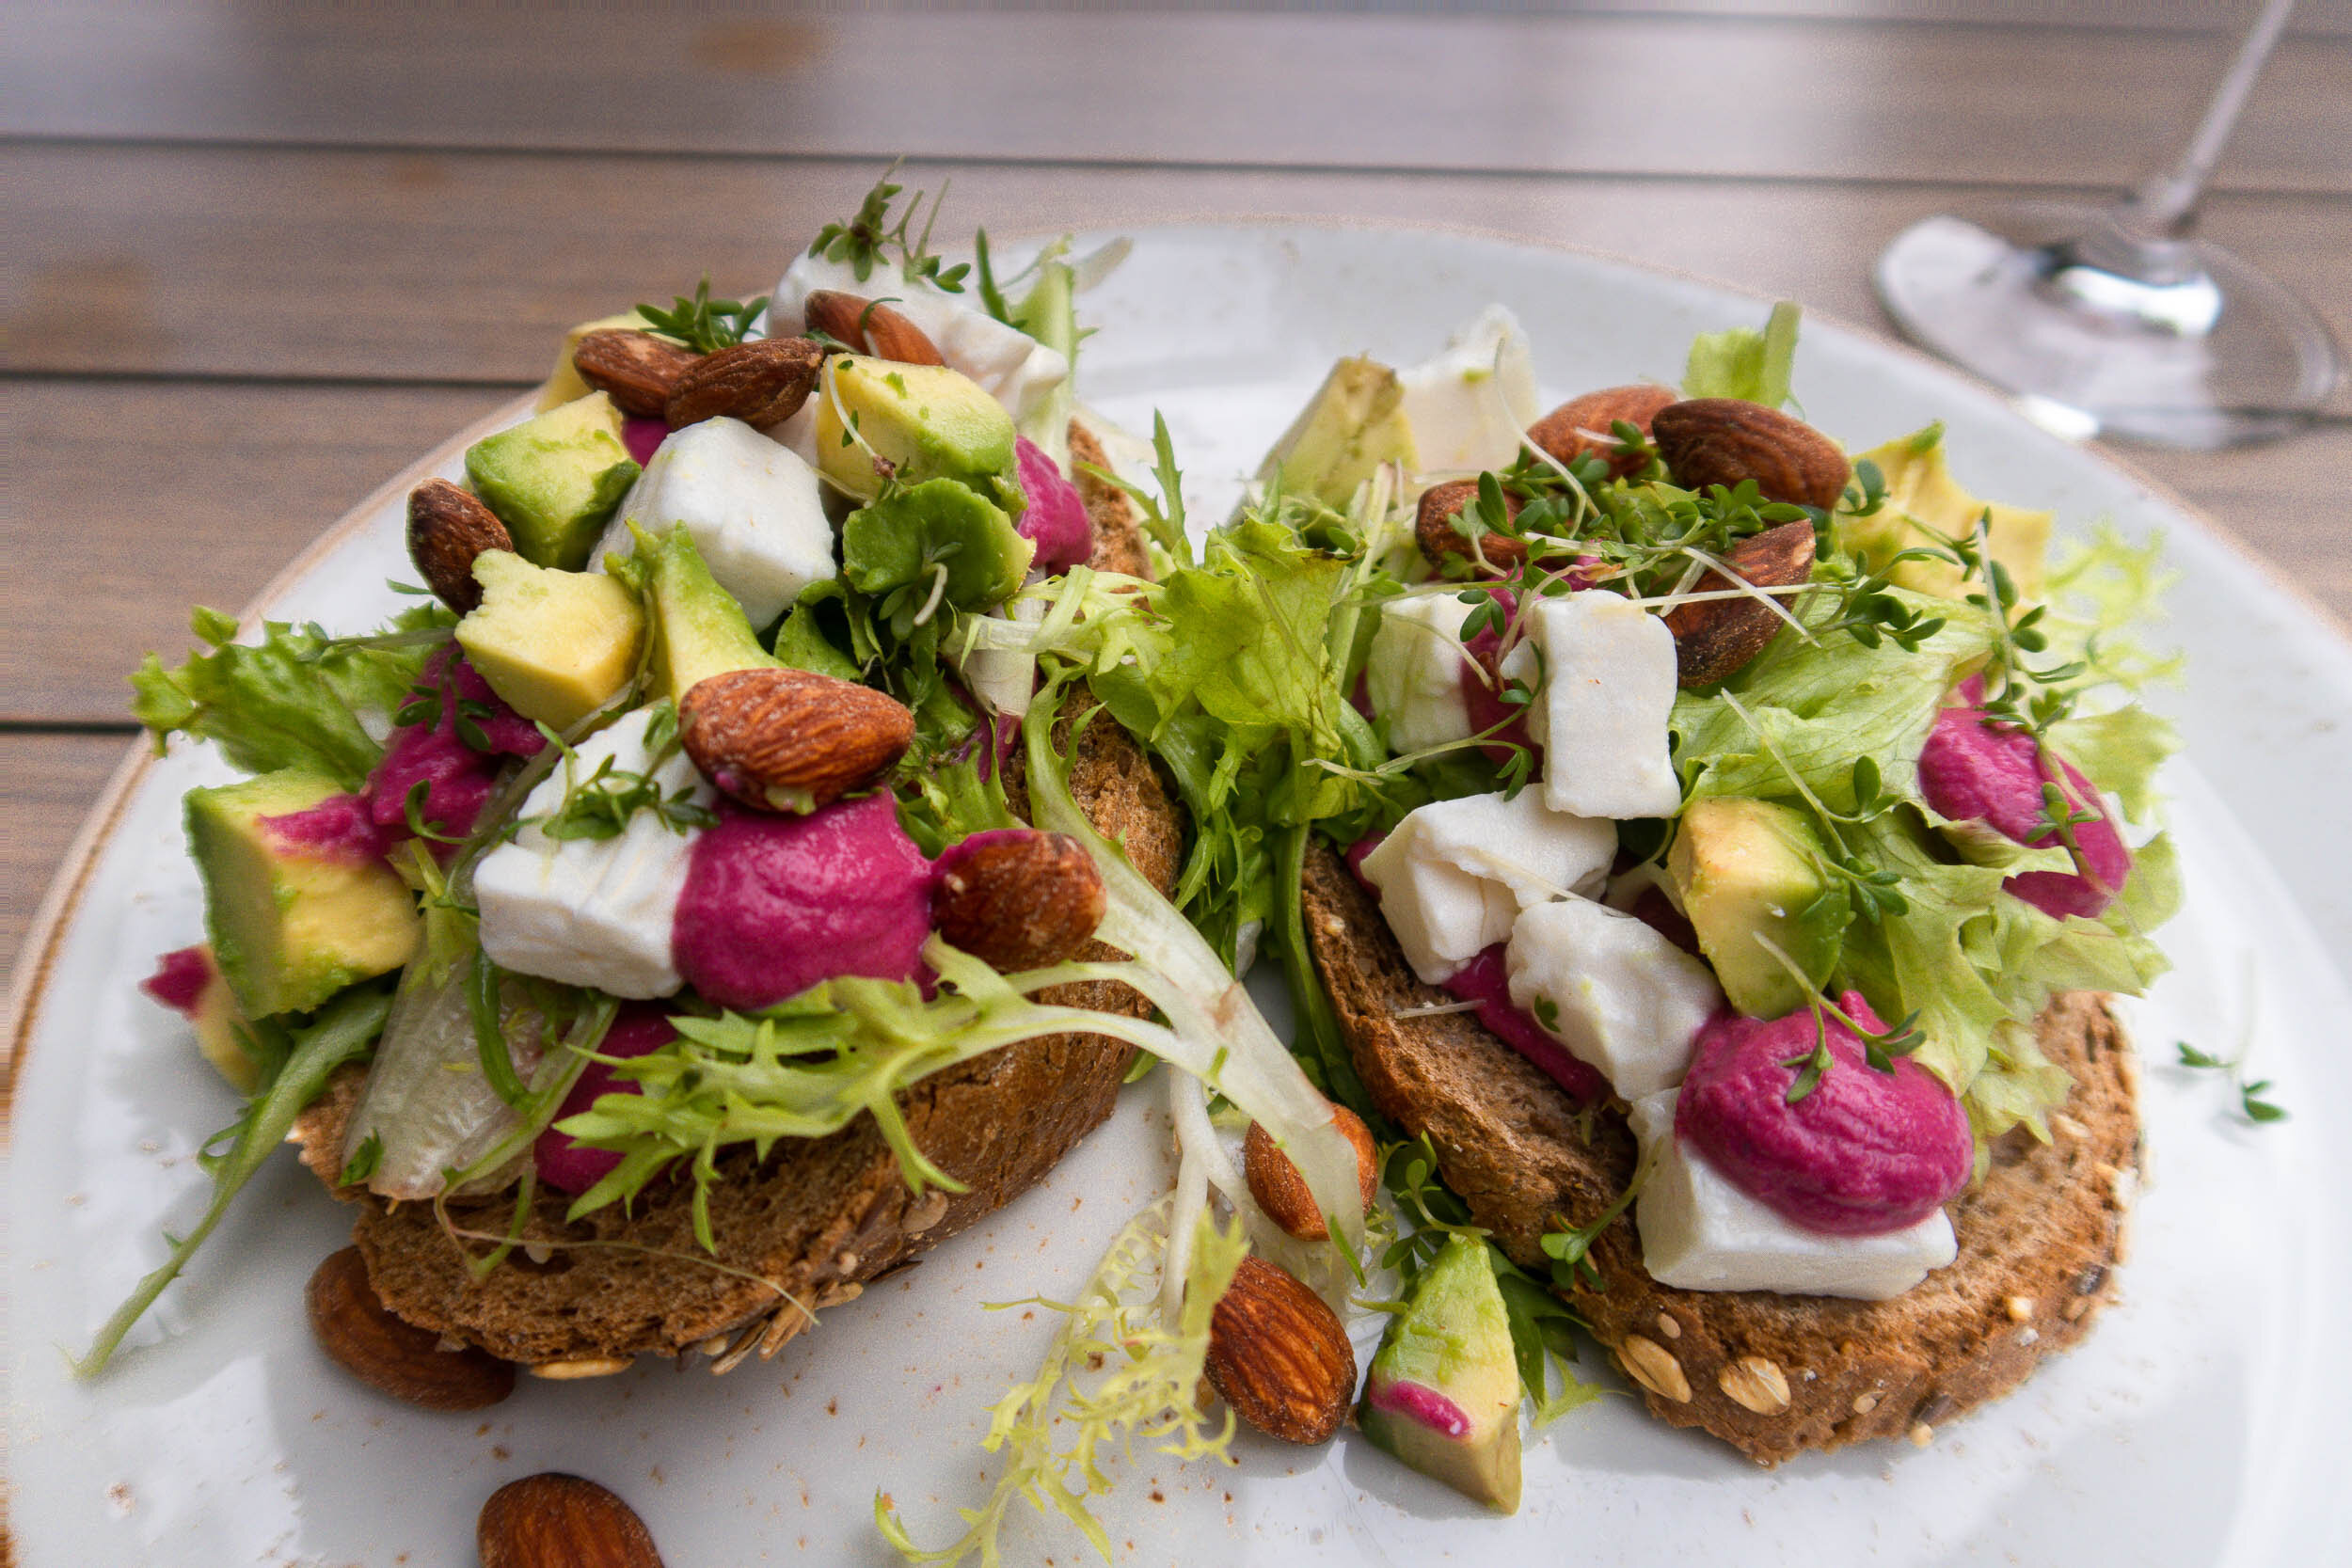 Travel tips and tricks for Haarlem, Netherlands and surrounding areas. Amazing and healthy food choices.